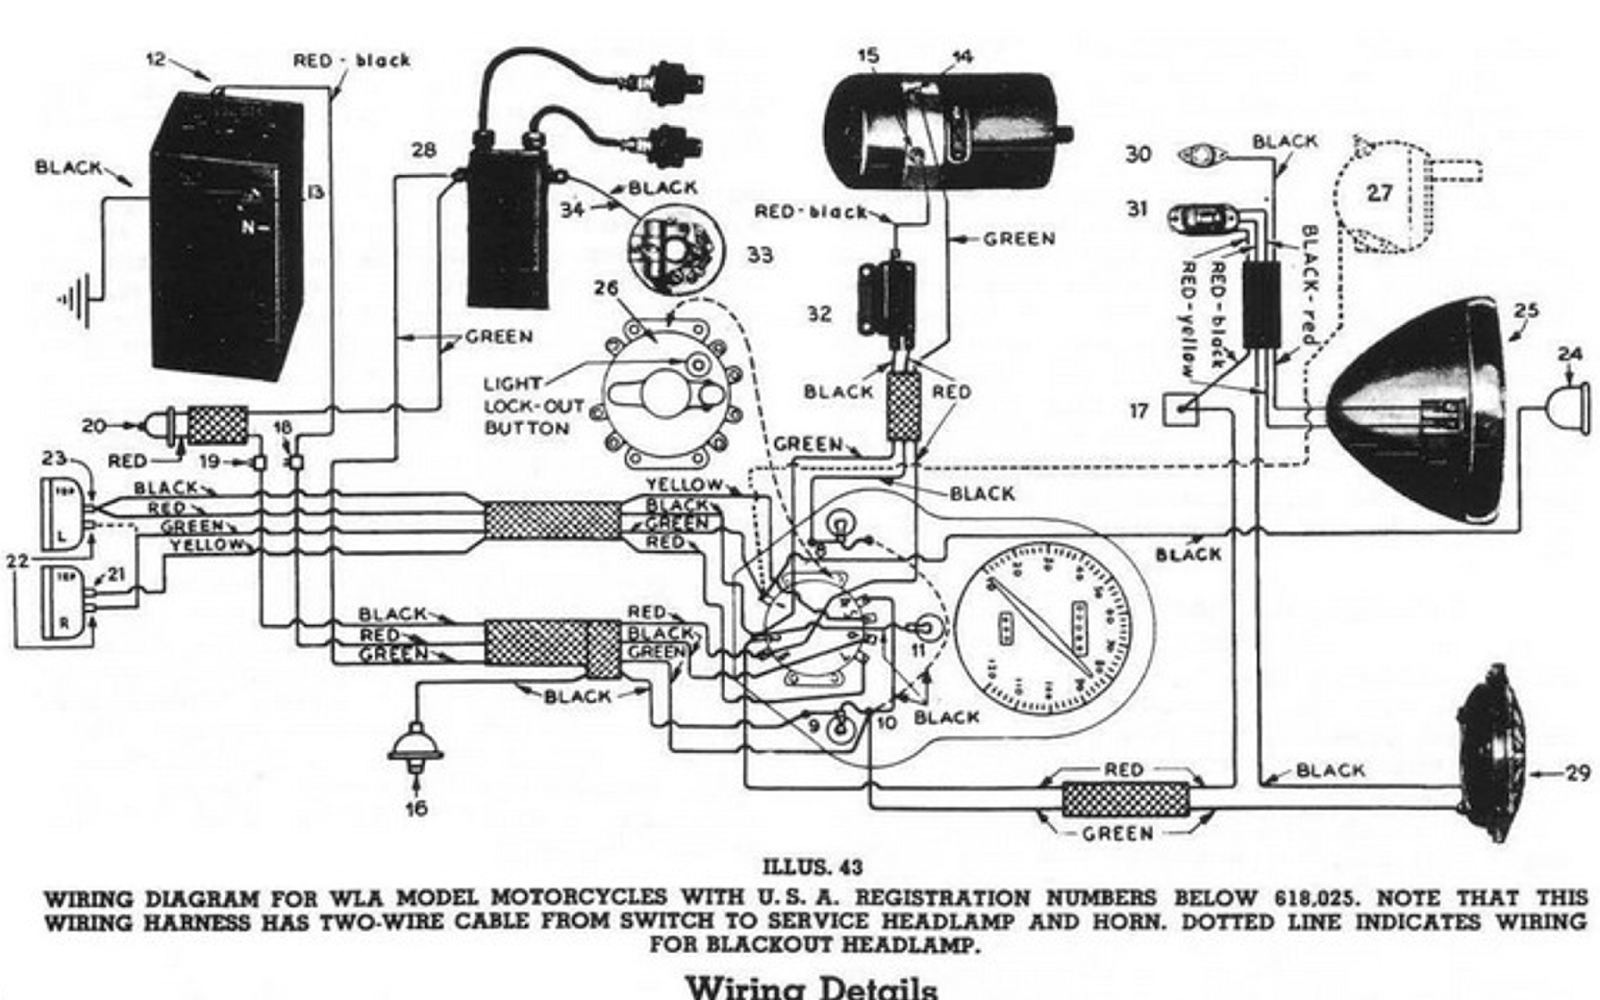 1941 harley davidson wl restoration re wiring the harley i have started re wiring the harley here is a wiring diagram from the wla manual for early models